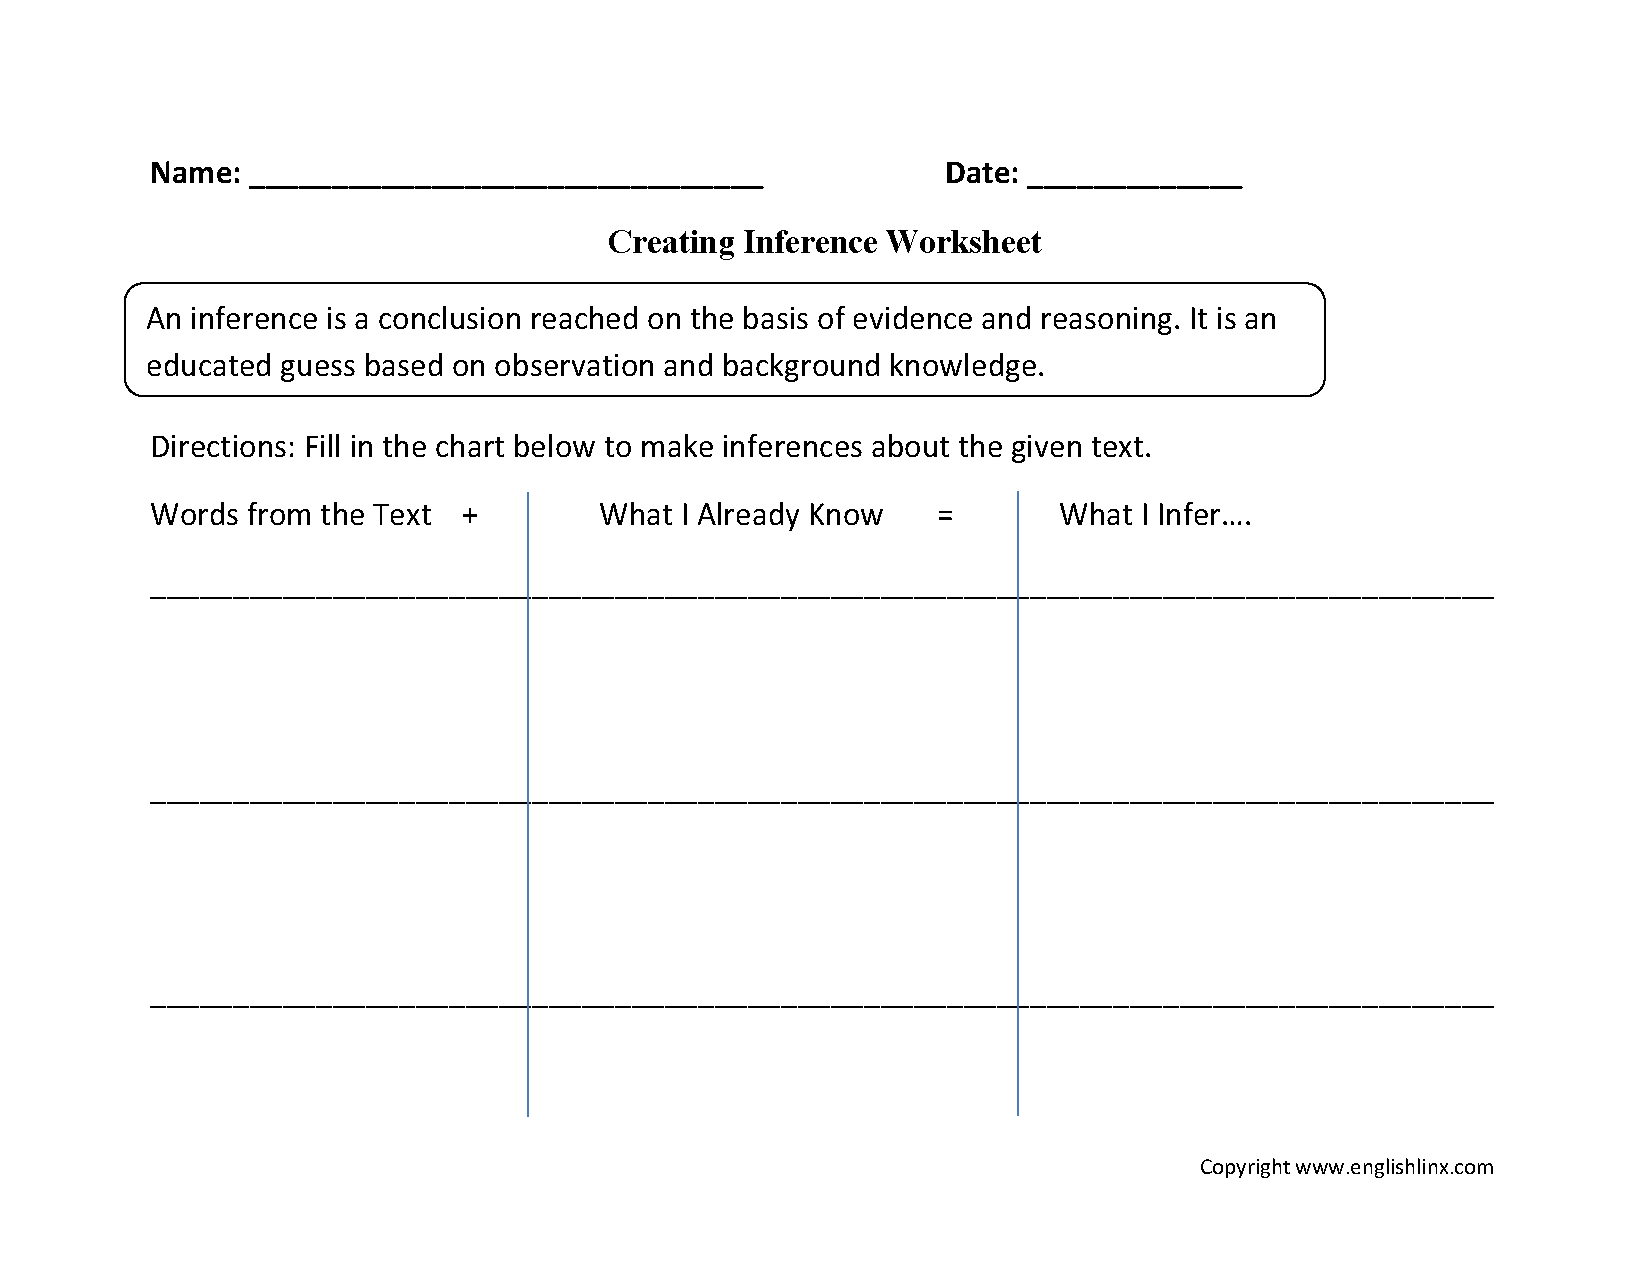 Creating Inference Worksheets